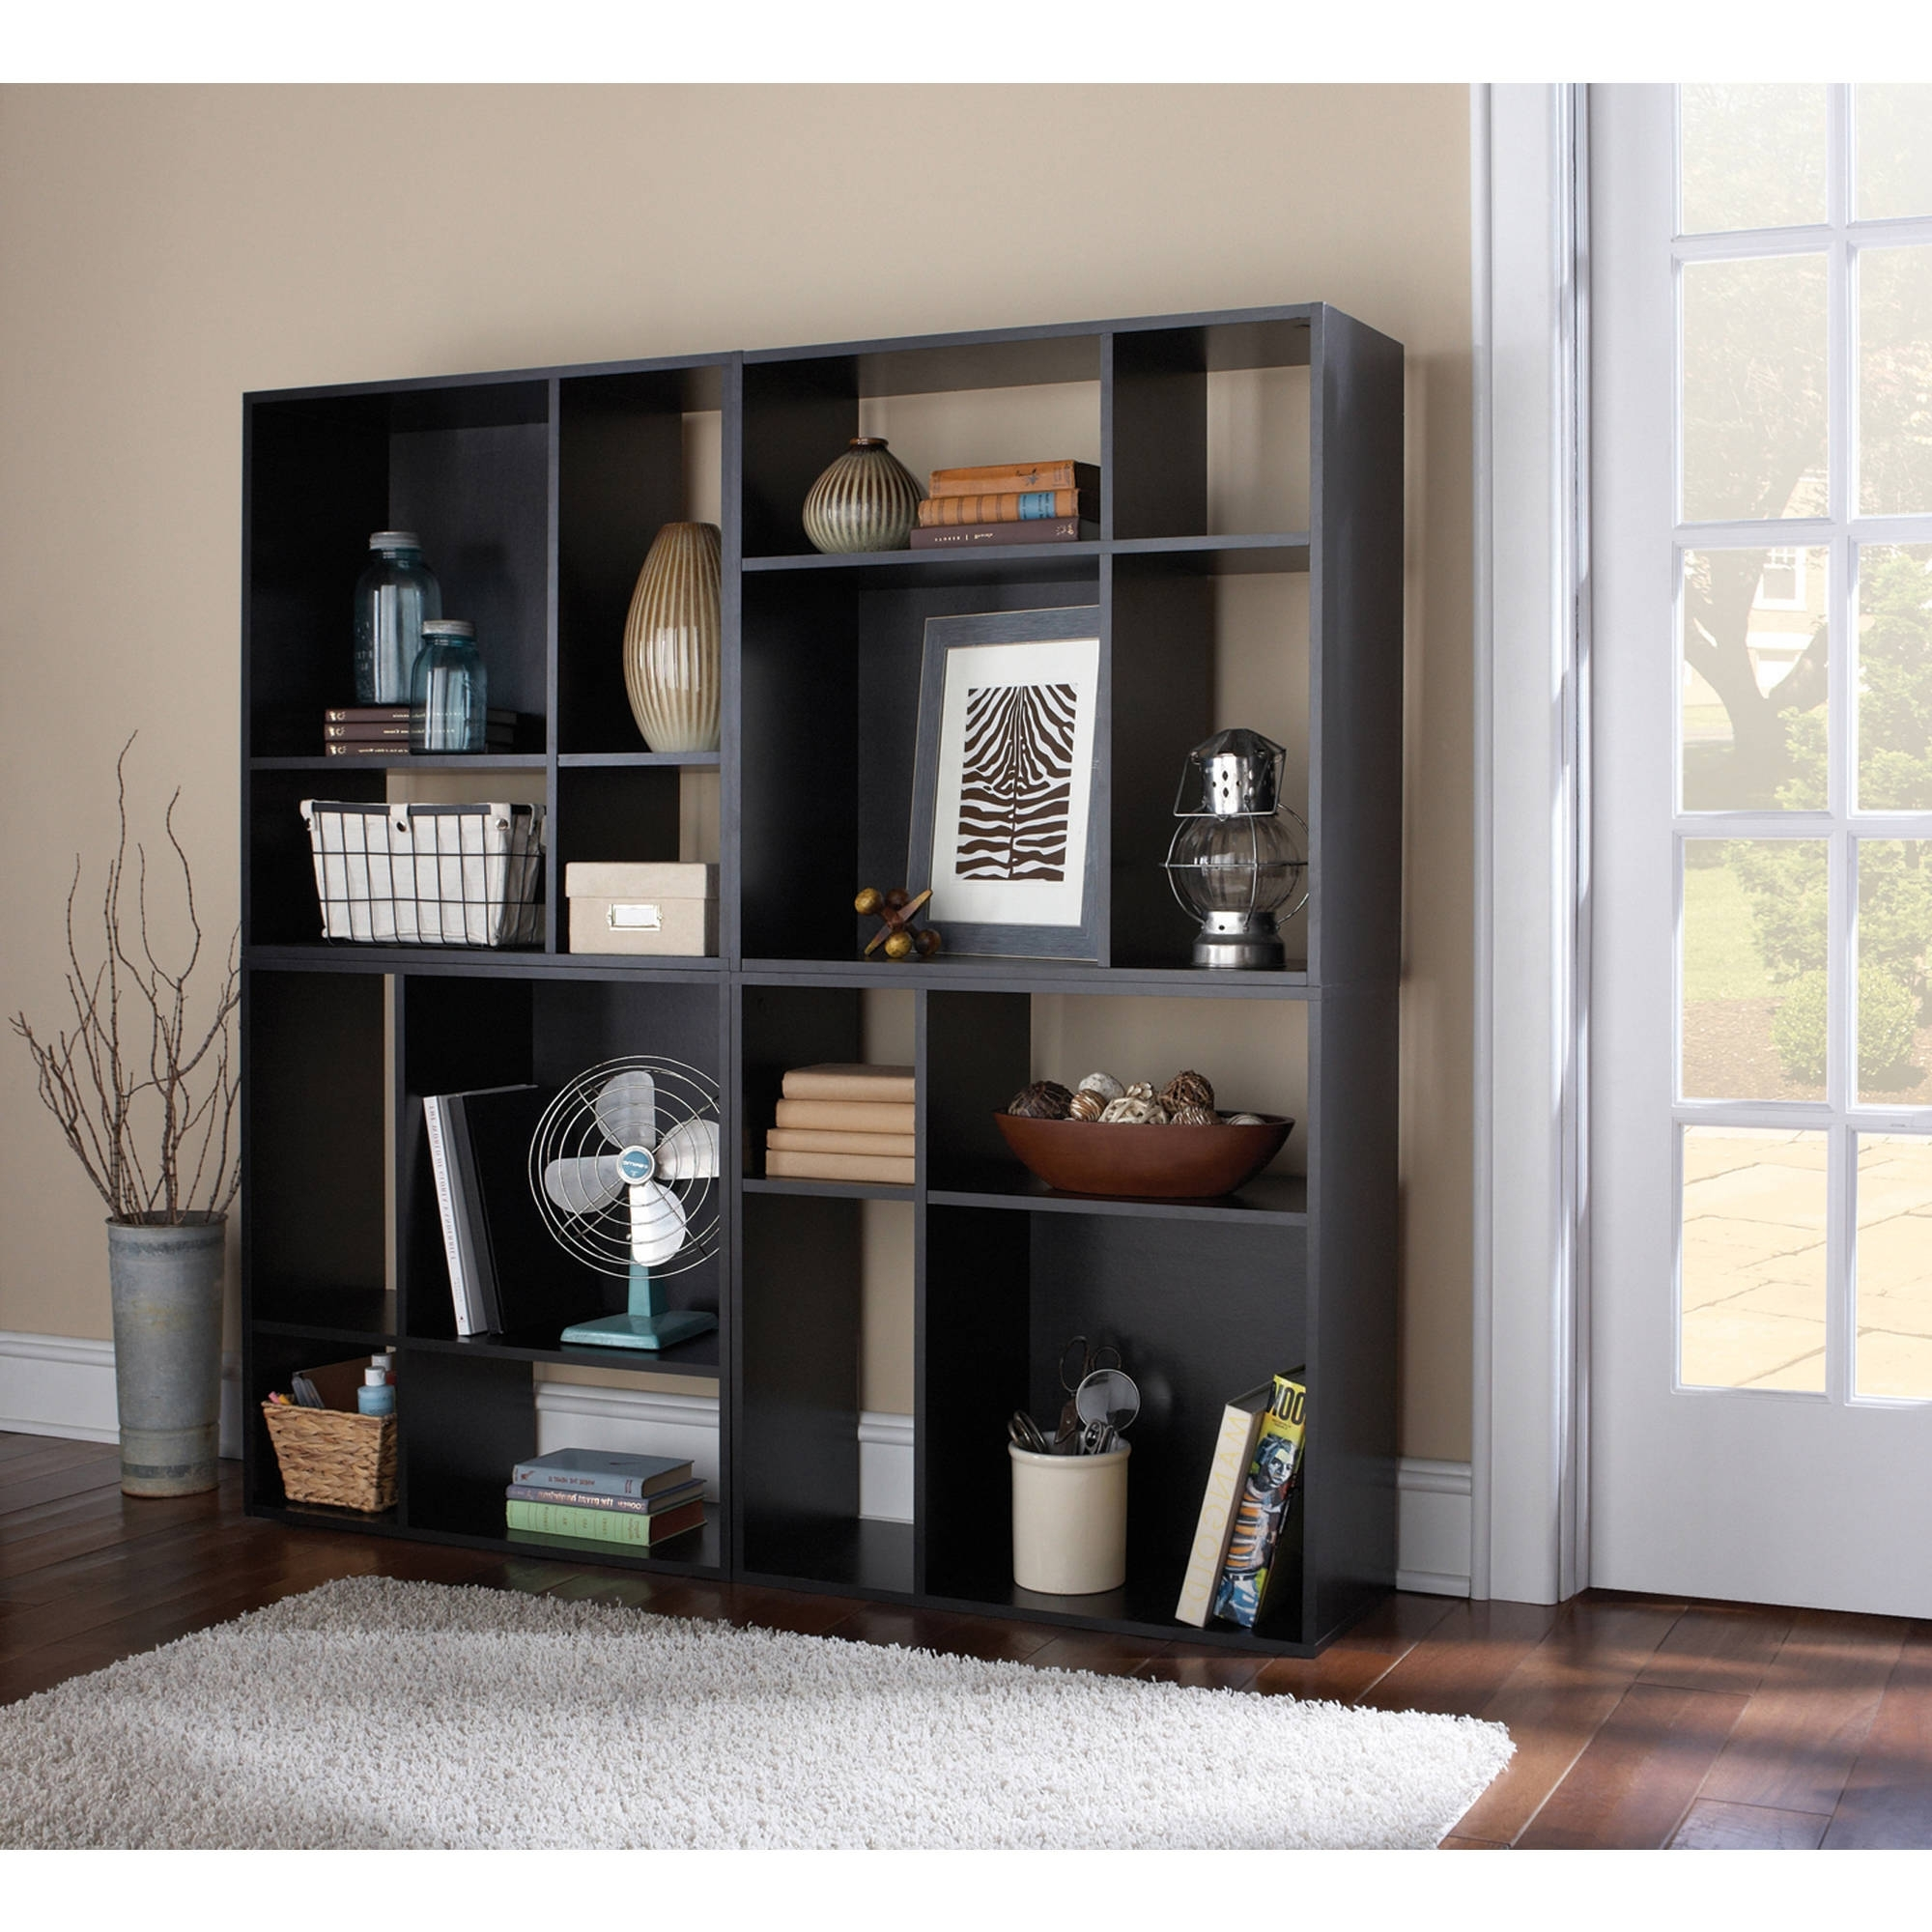 Home Furniture Storage Book Shelfs Shelving And Bookcases 4 Cube Inside 2017 Storage Bookcases (View 4 of 15)